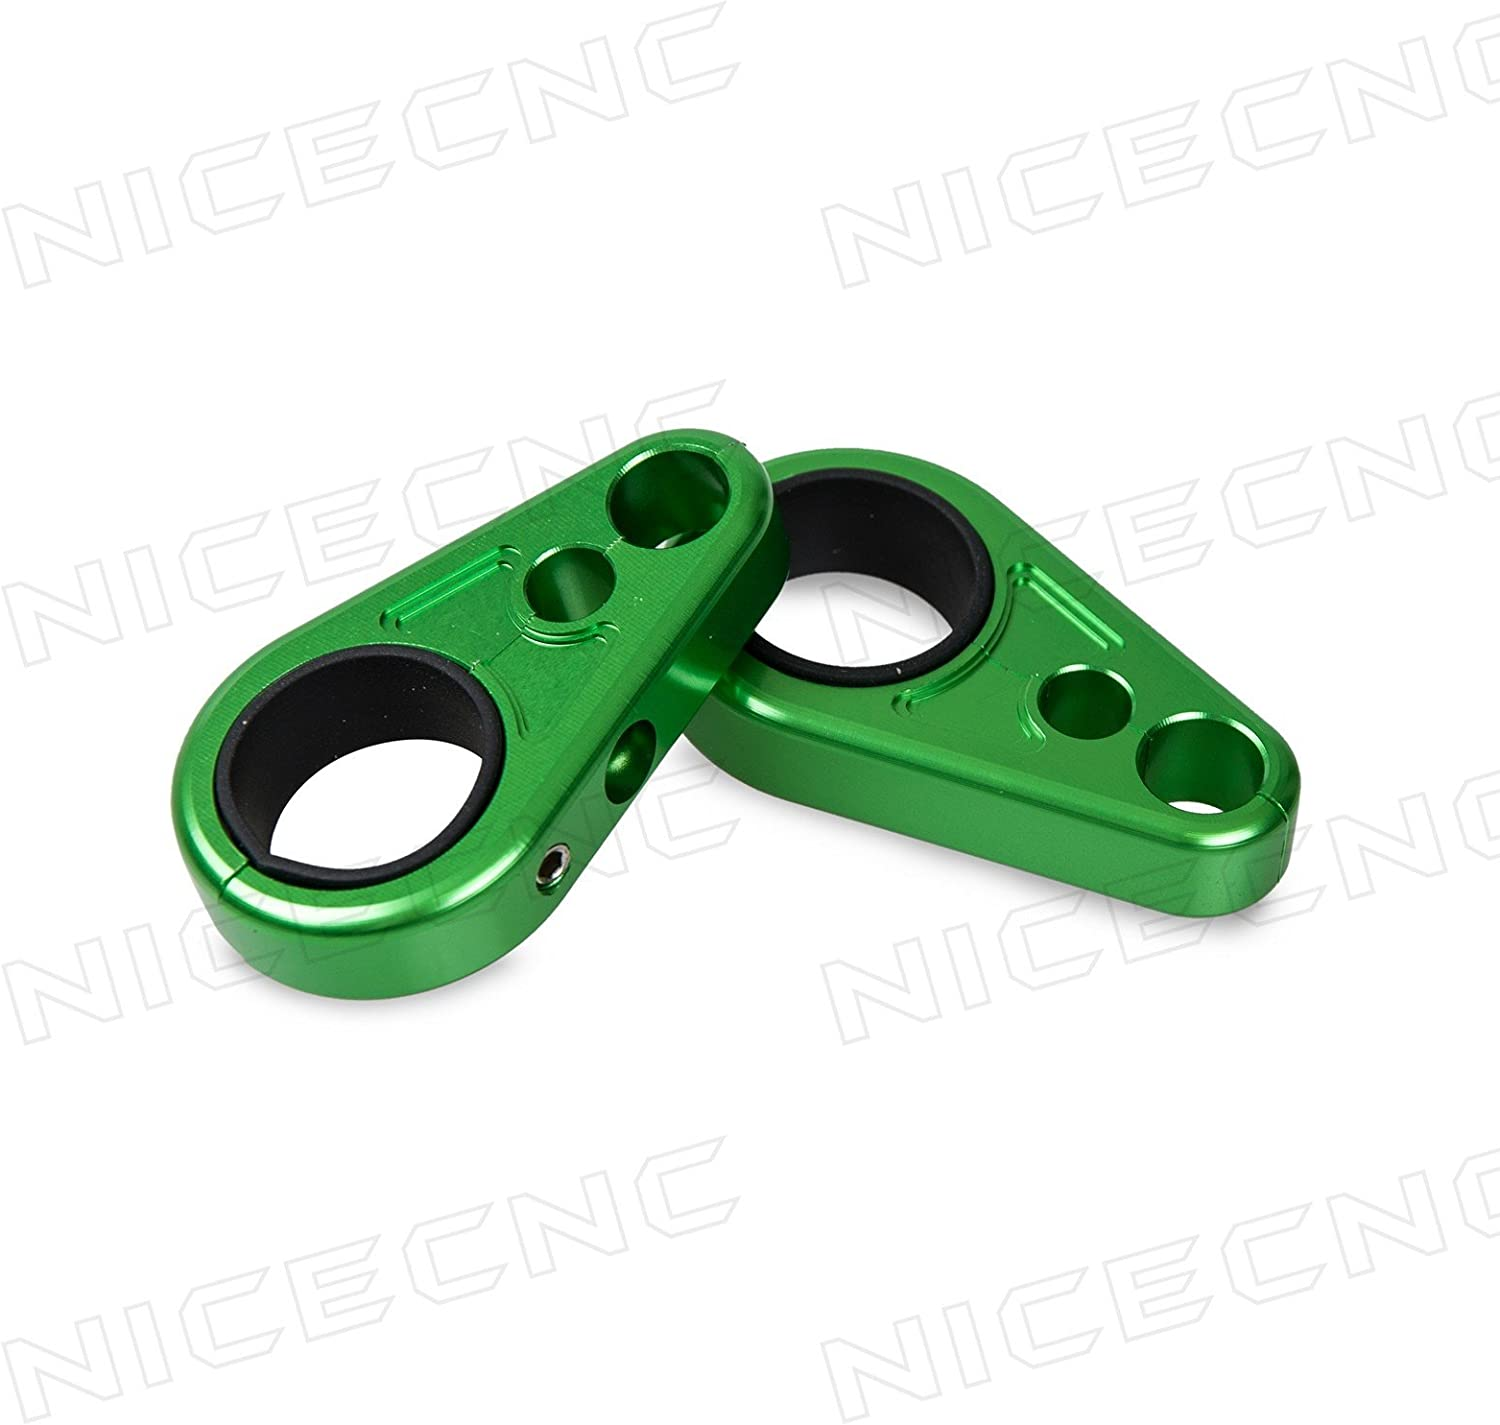 Billet Green Brake Line Clamps for Sport ATV with 1 or 3//4 ATV A-Arms